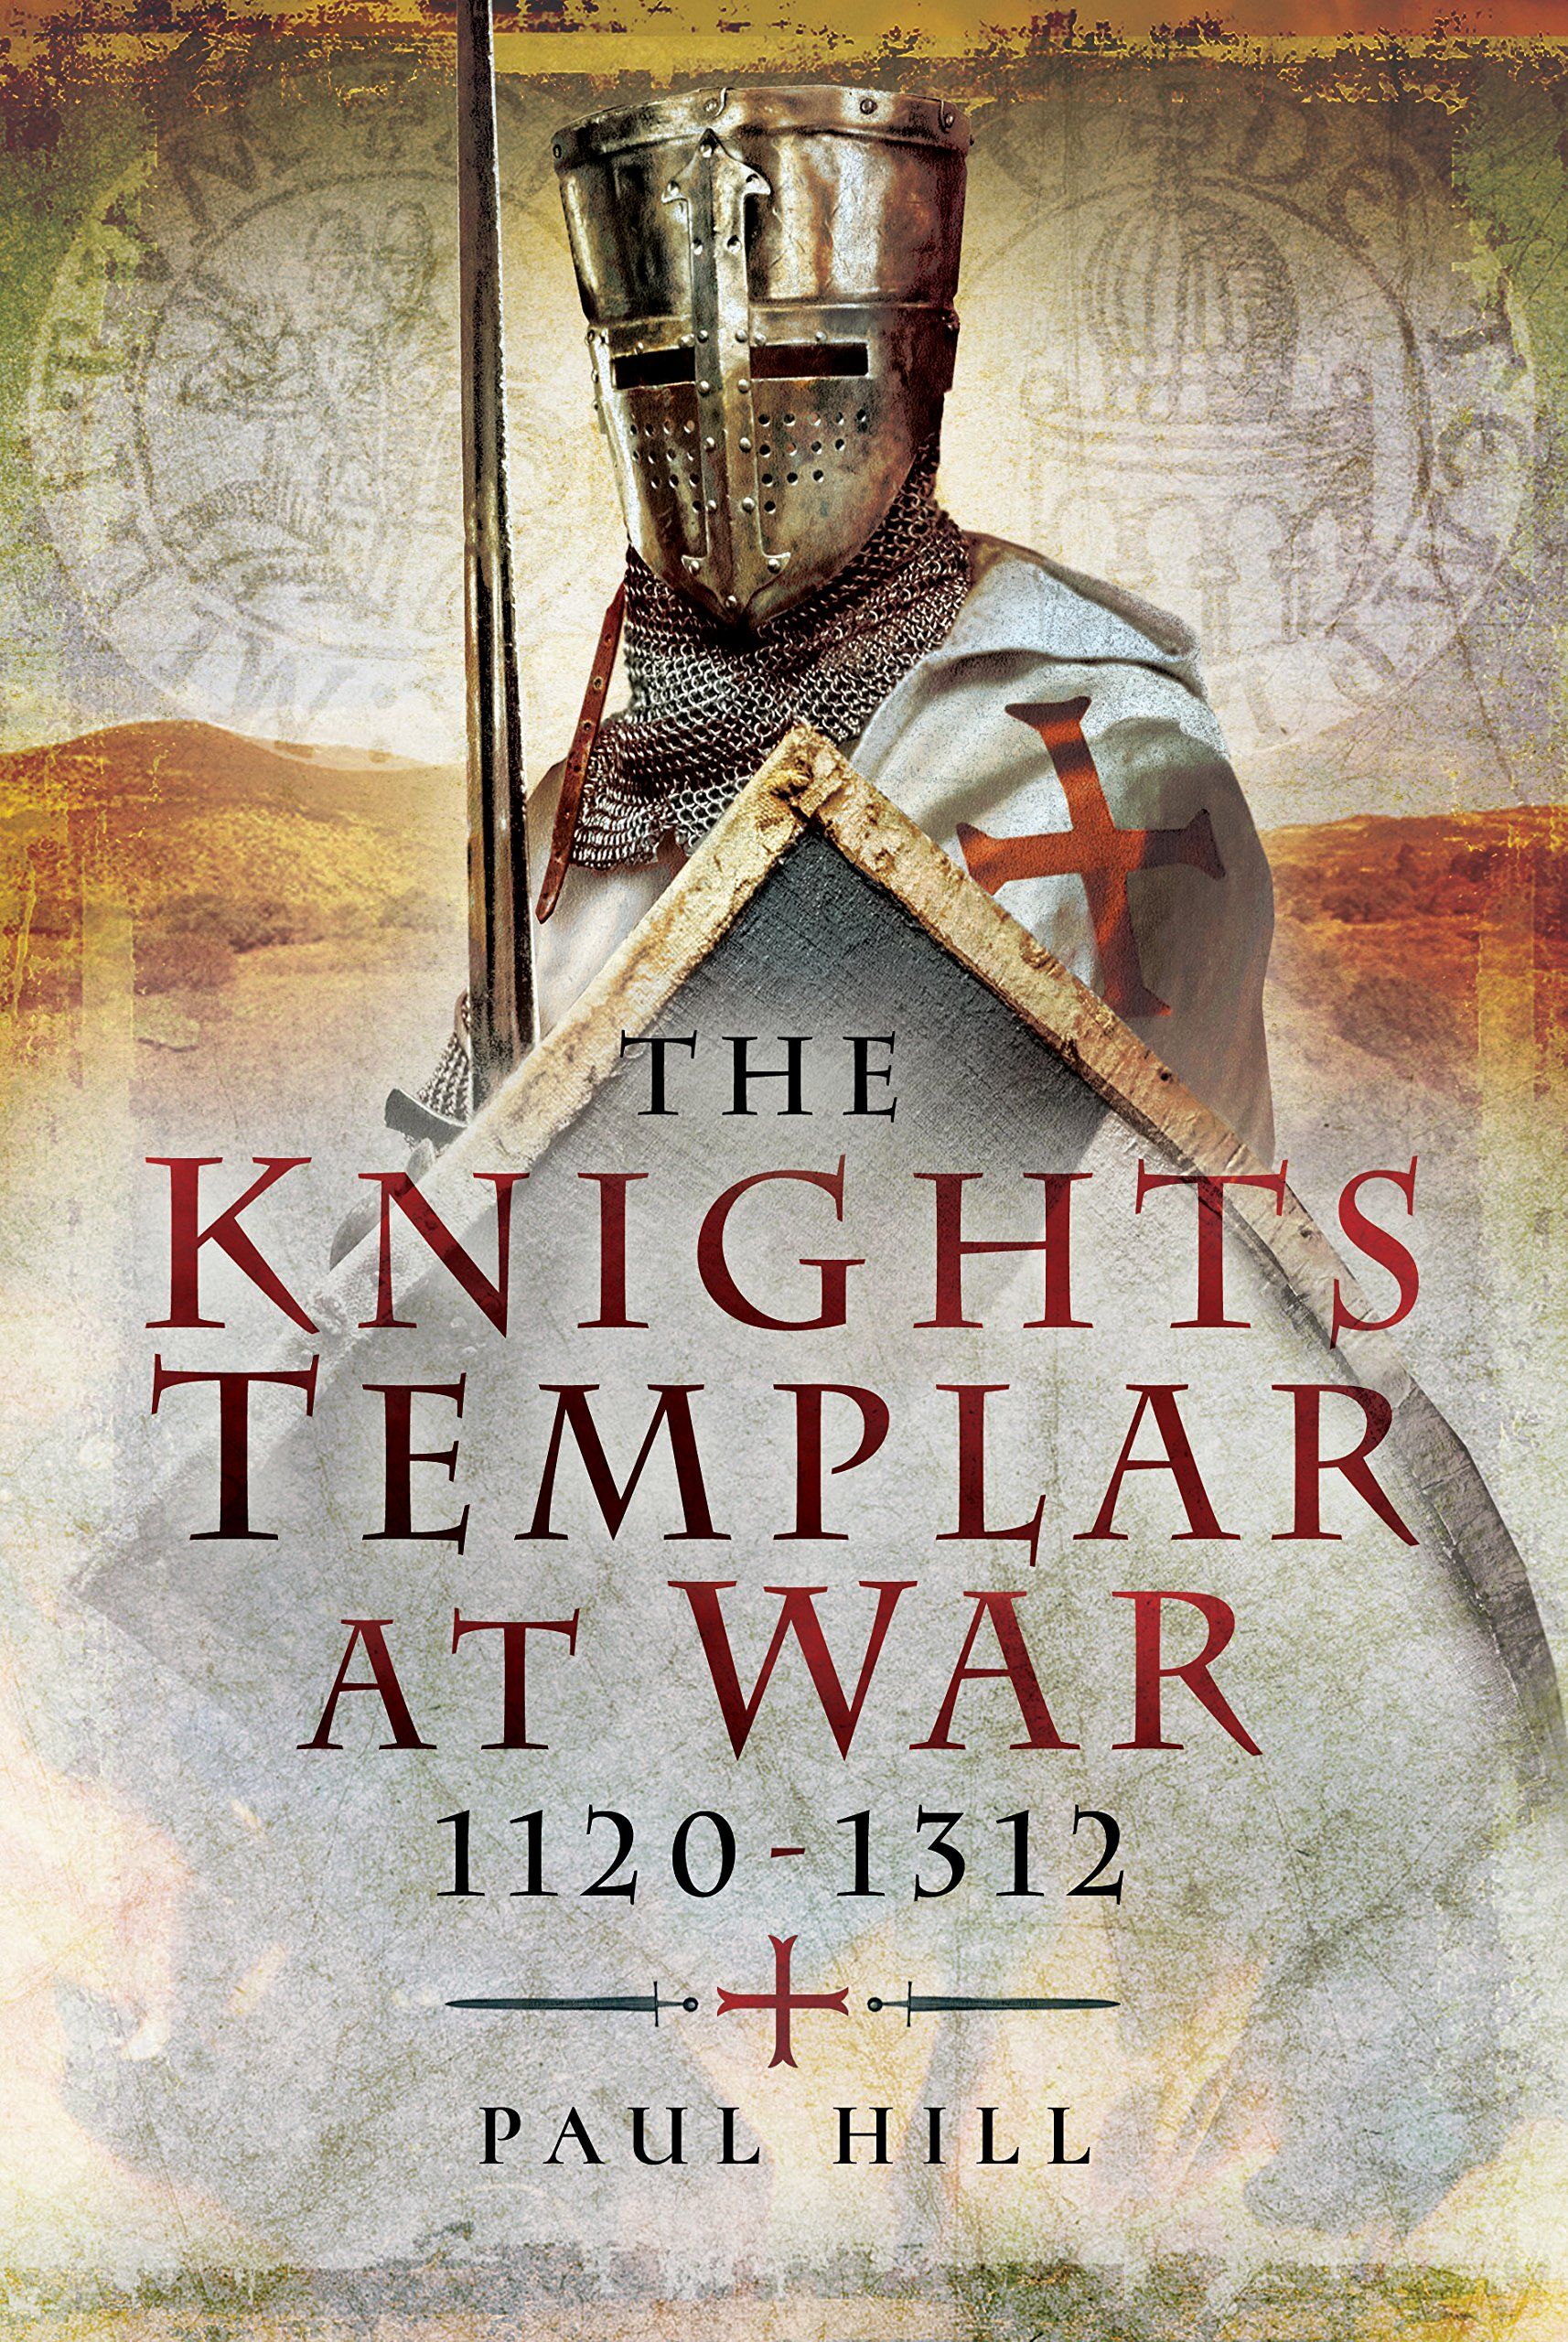 The Knights Templar at War 1120-1312: Paul Hill